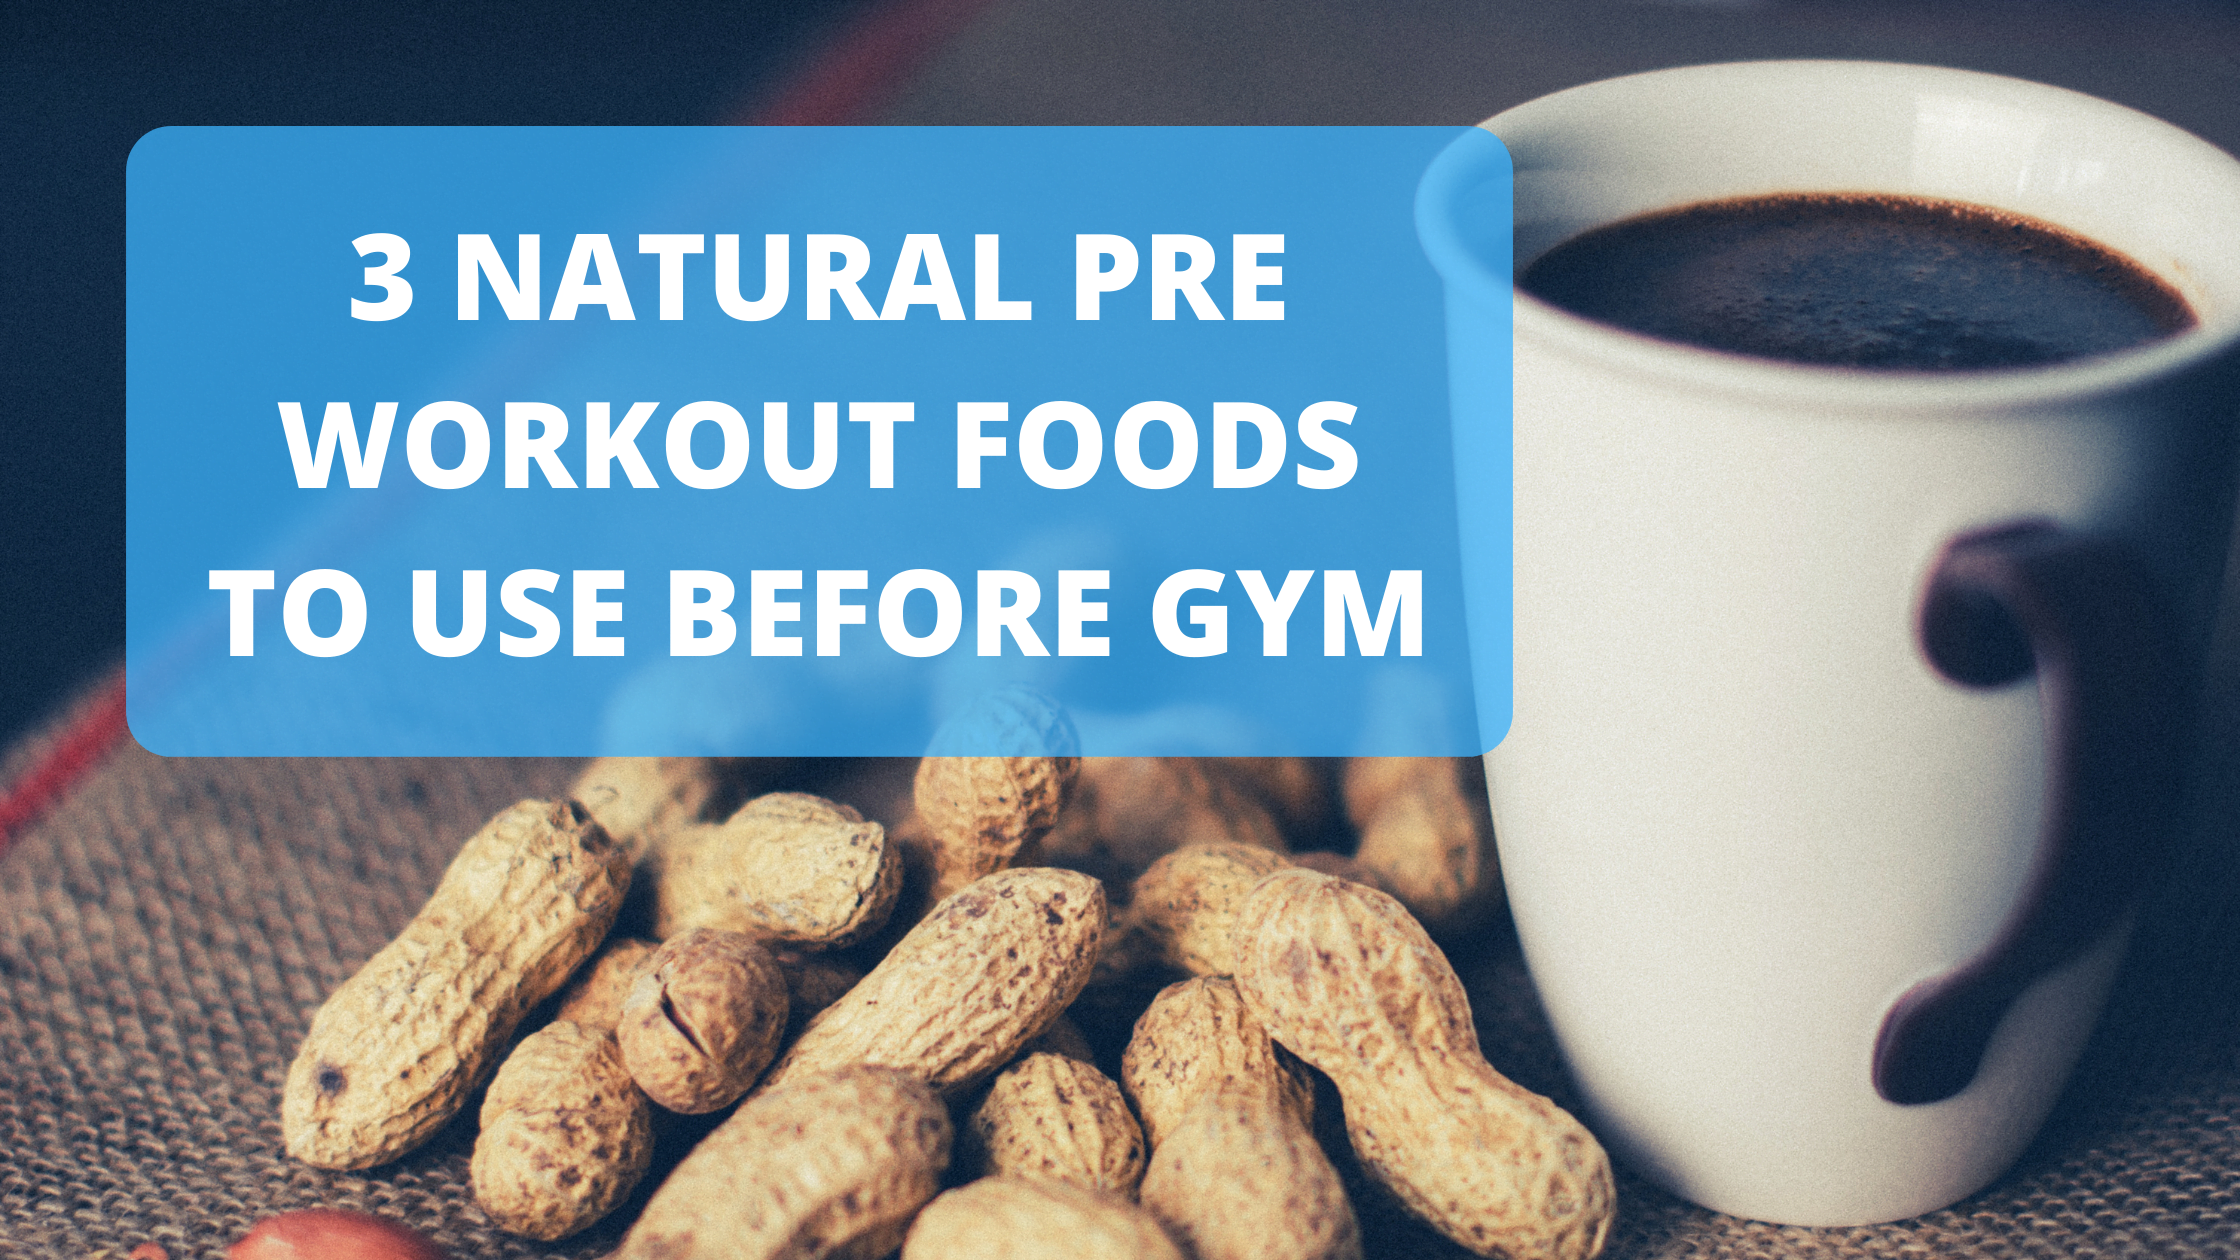 3-Natural-Pre-Workout-Foods-to-Use-Before-Gym